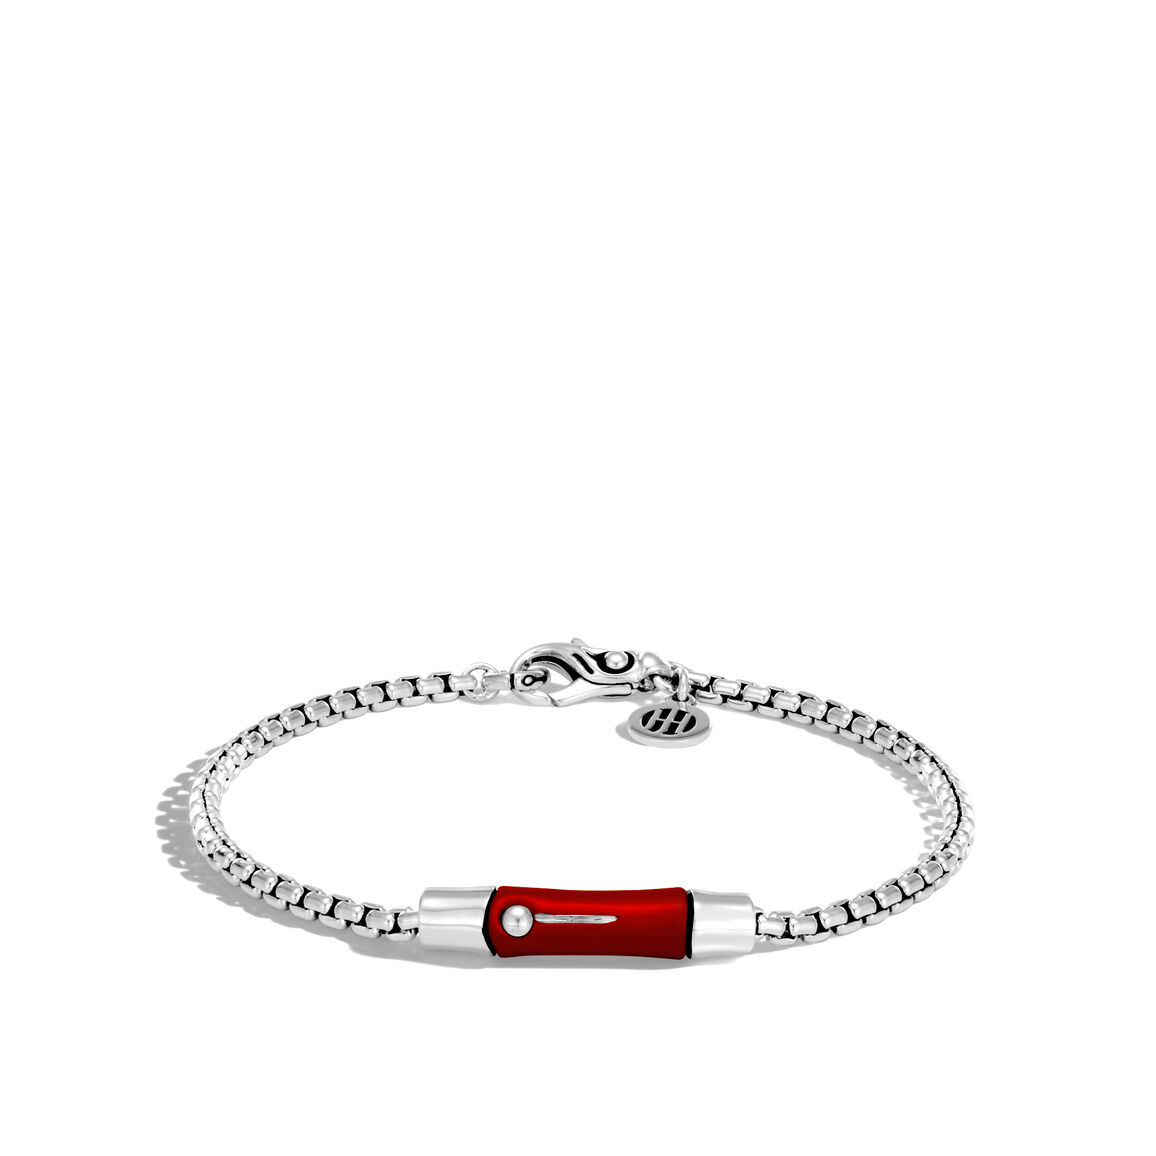 Bamboo 2.7MM Station Bracelet in Silver and Enamel